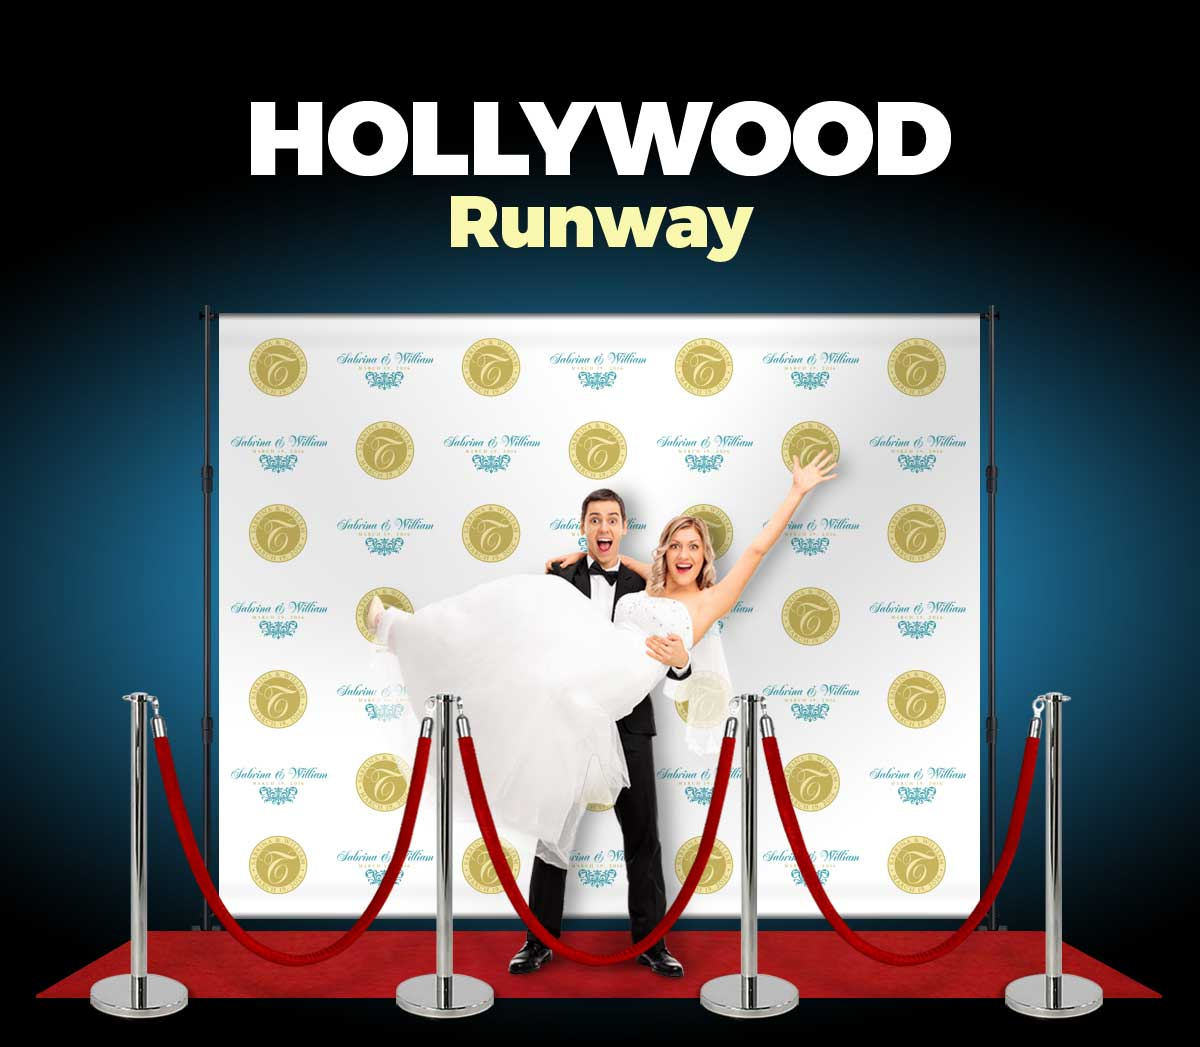 Hollywood Runway